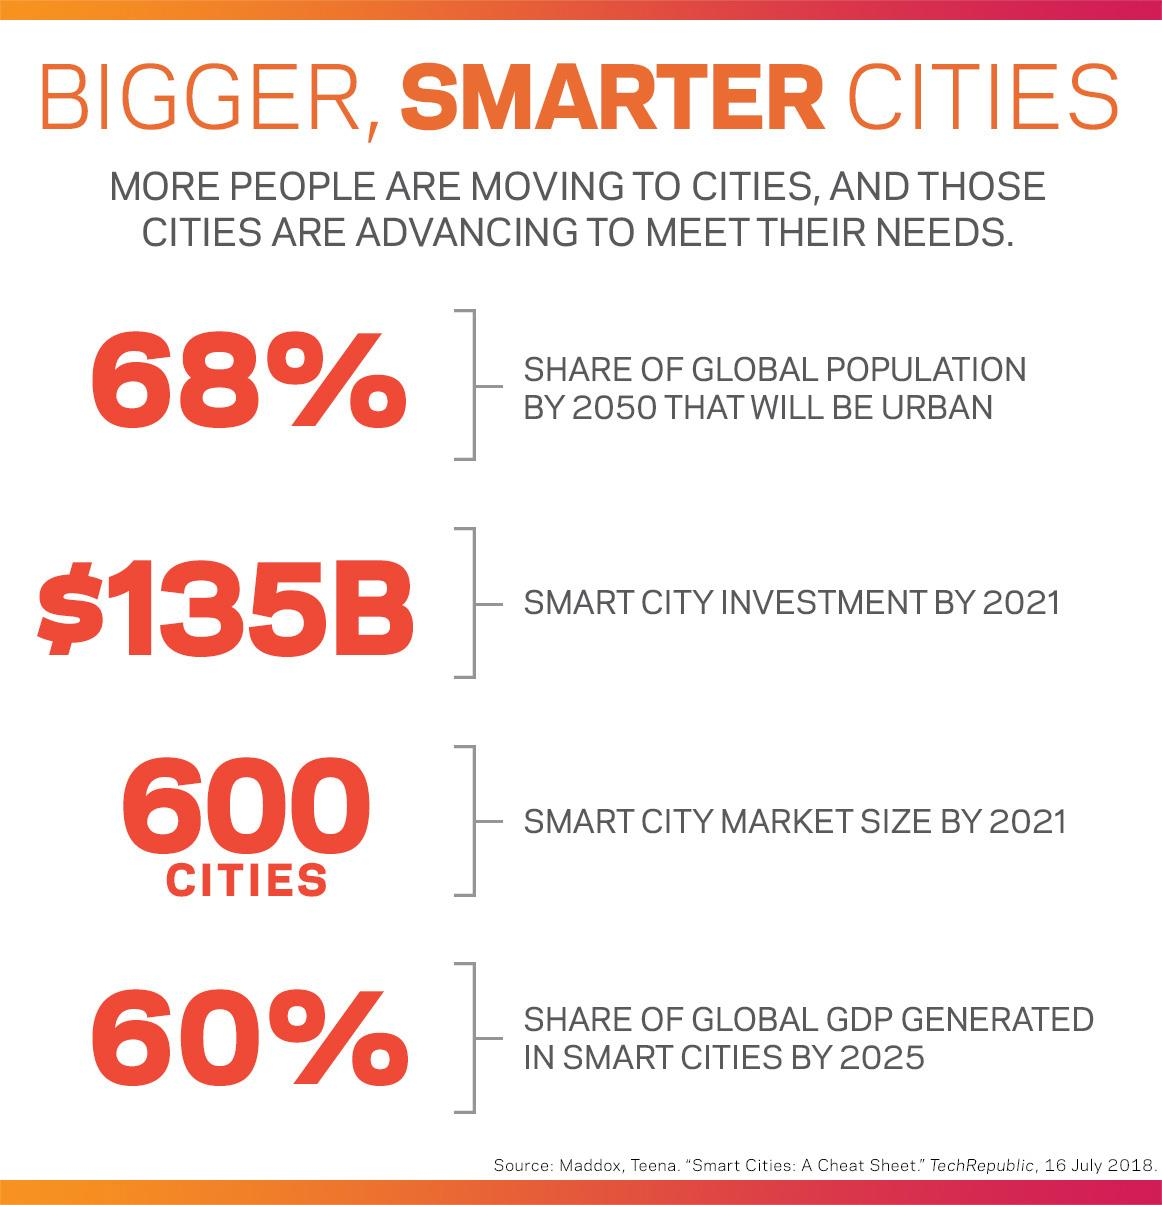 Bigger, Smarter cities infographic